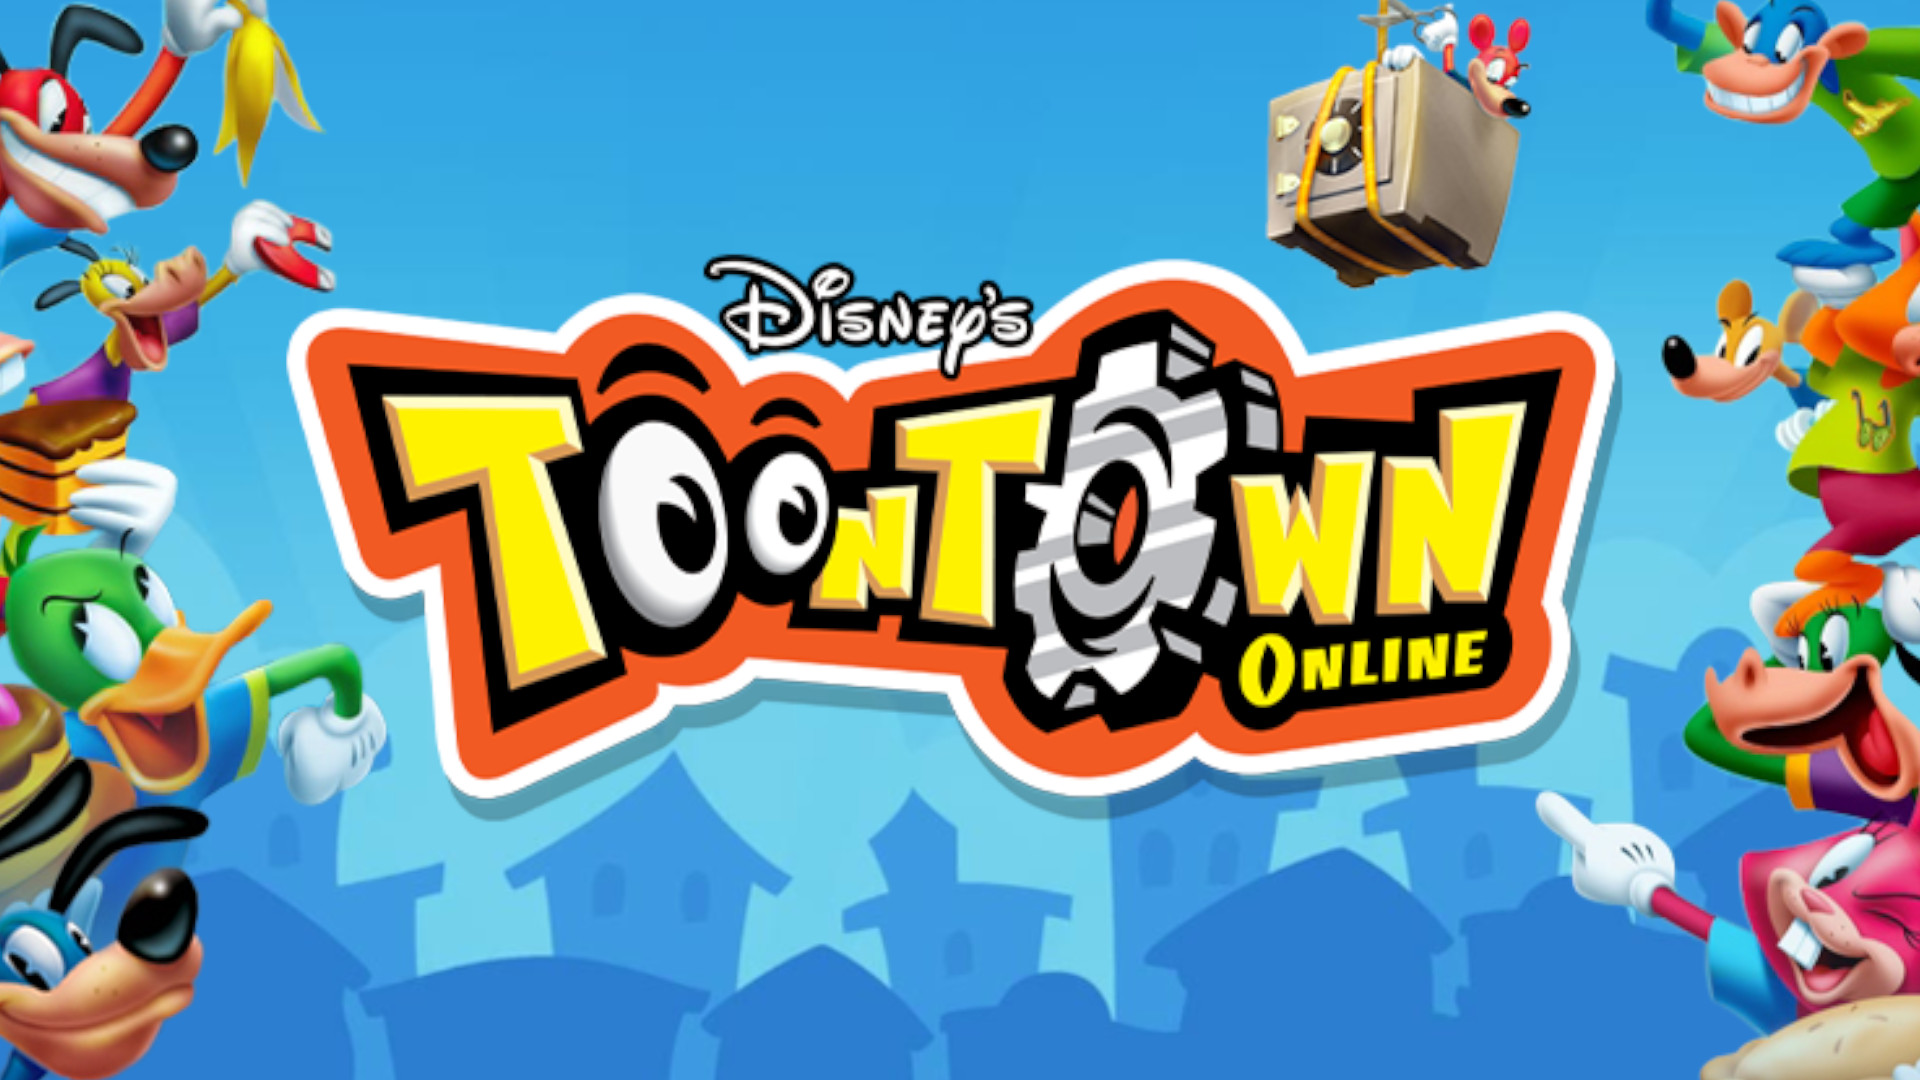 The Toontown Preservation Project aims to save the history of Disney's MMO